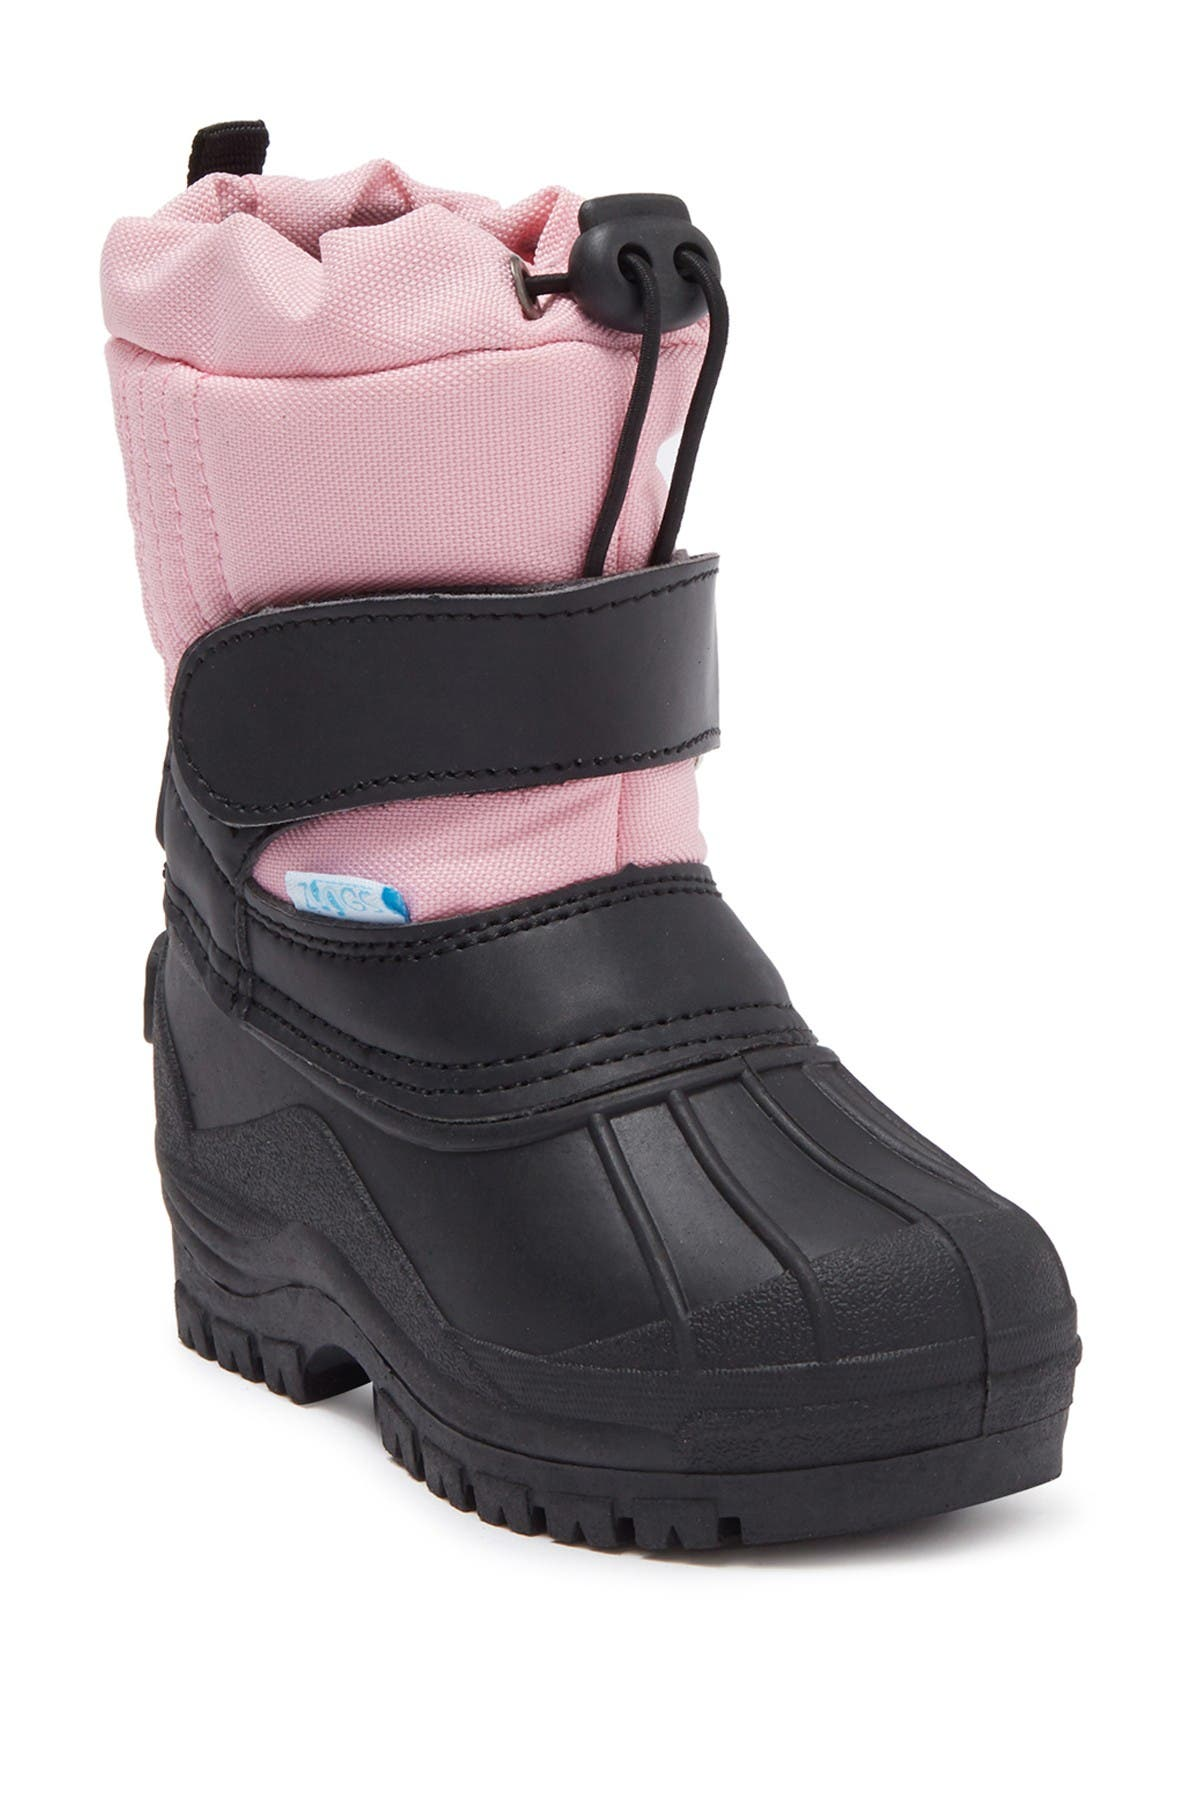 Image of Zoogs Toggle Snow Boot